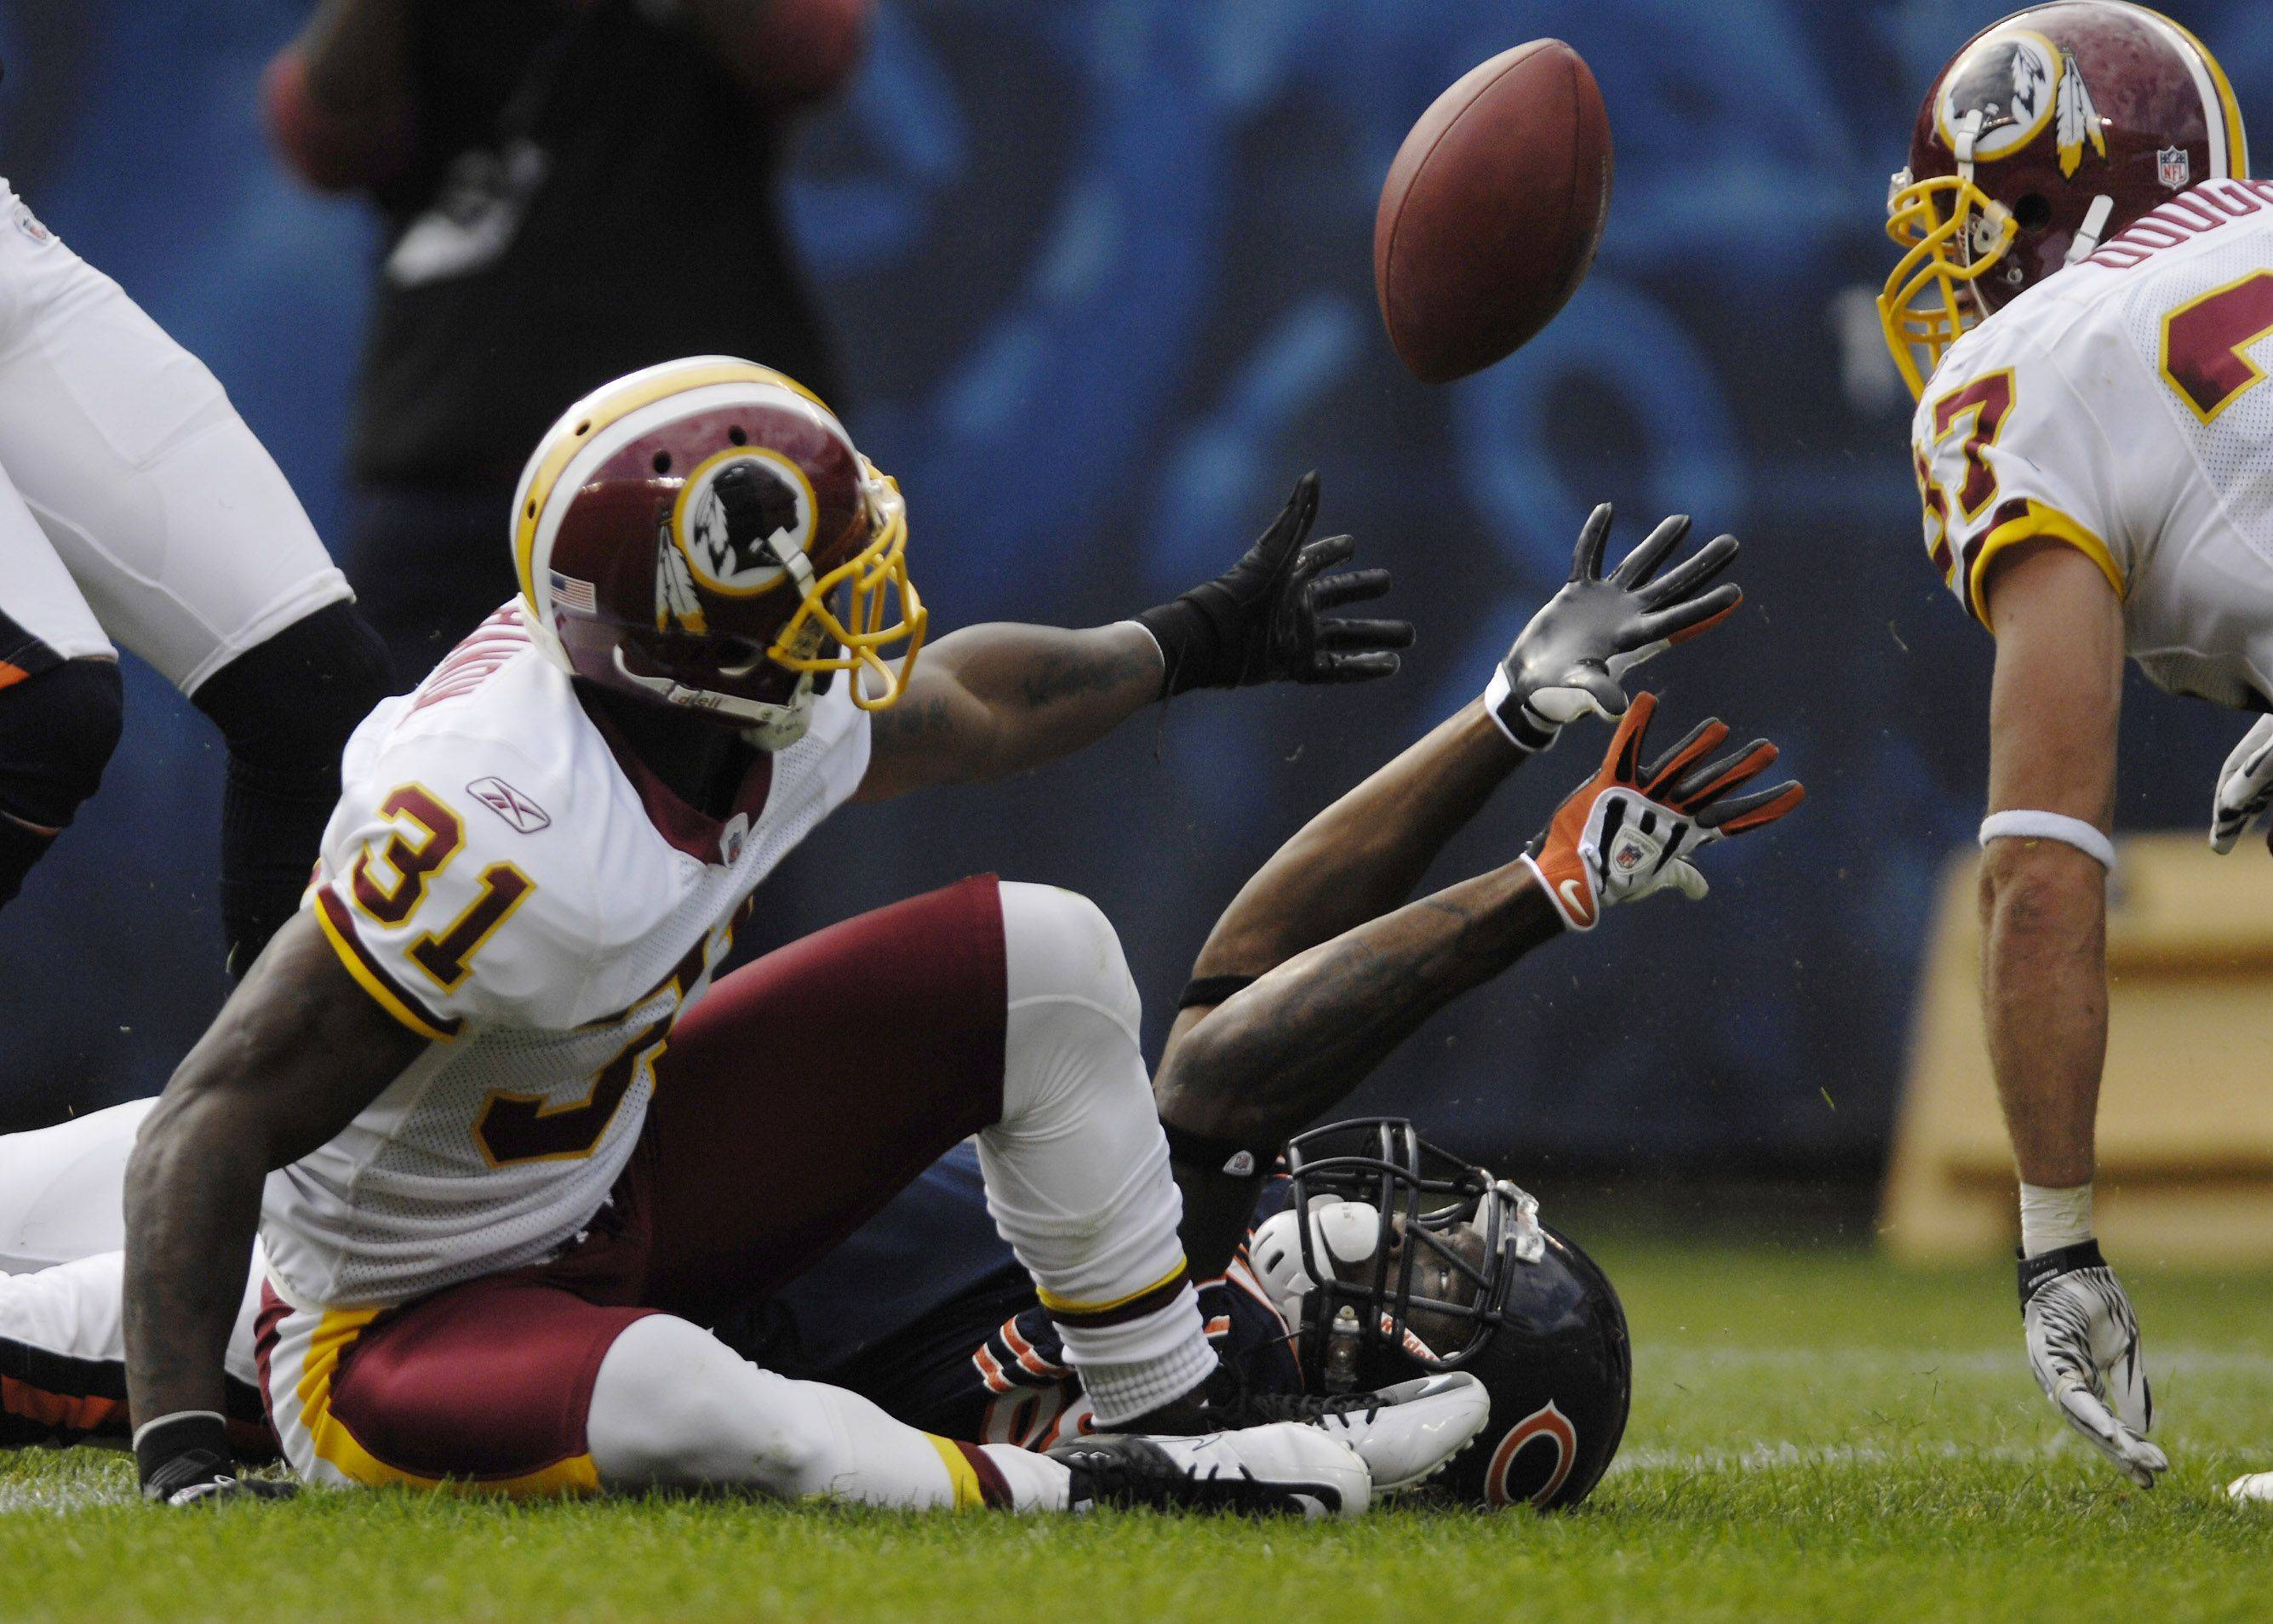 Chicago Bears wide receiver Earl Bennett reaches for the ball after being stopped at the one-foot line by Washington Redskins cornerback Phillip Buchanon. He caught the ball and quarterback Jay Cutler fumbled the ball on the next play.